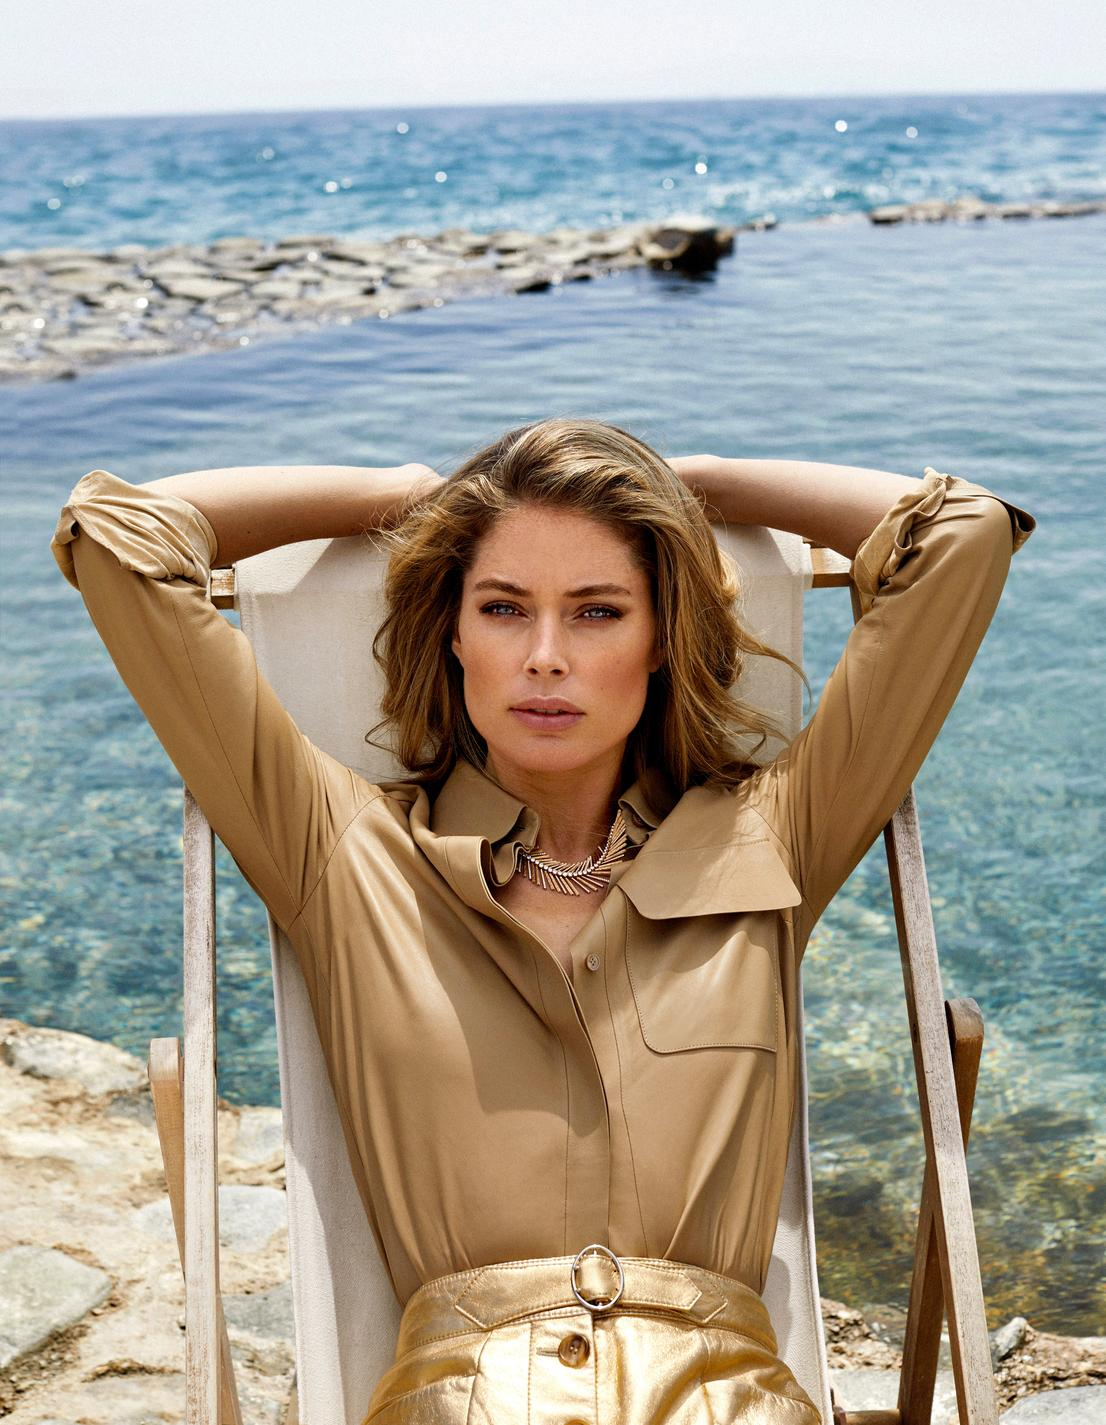 Tod's leather shirt, golden leather shorts, Miu Miu, Desert Palm necklace, in pink gold and diamonds, Golden Oasis collection, Piaget. Xavi Gordo image.